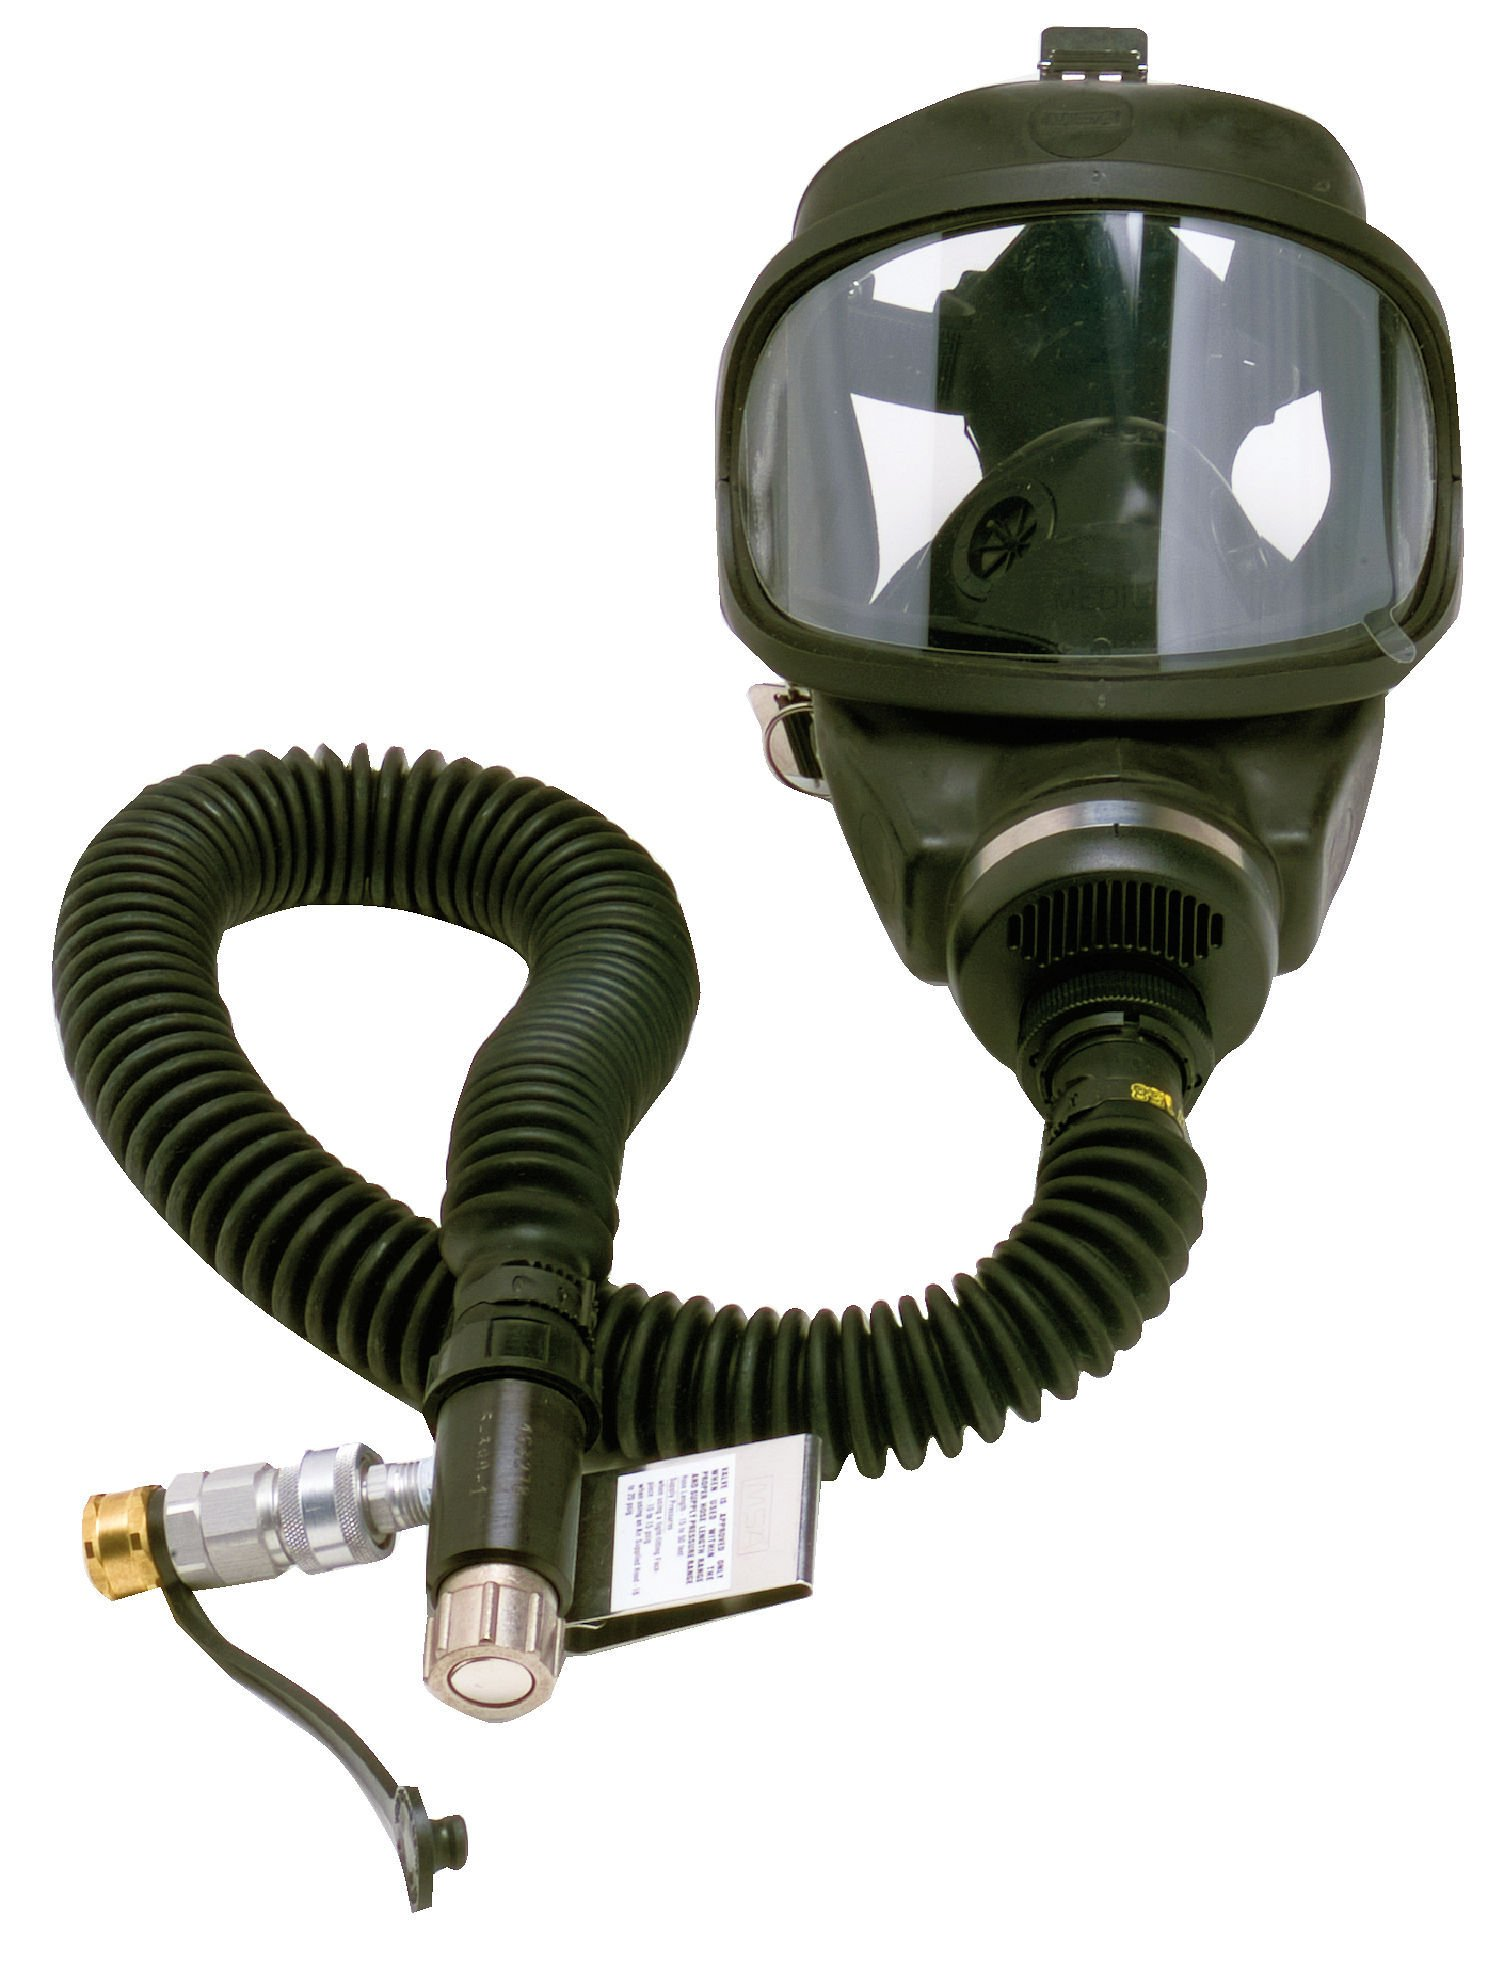 MSA Safety 461717 Constant Flow Air-Line Respirator Complete Assembly, Ultravue Facepiece, Foster Steel